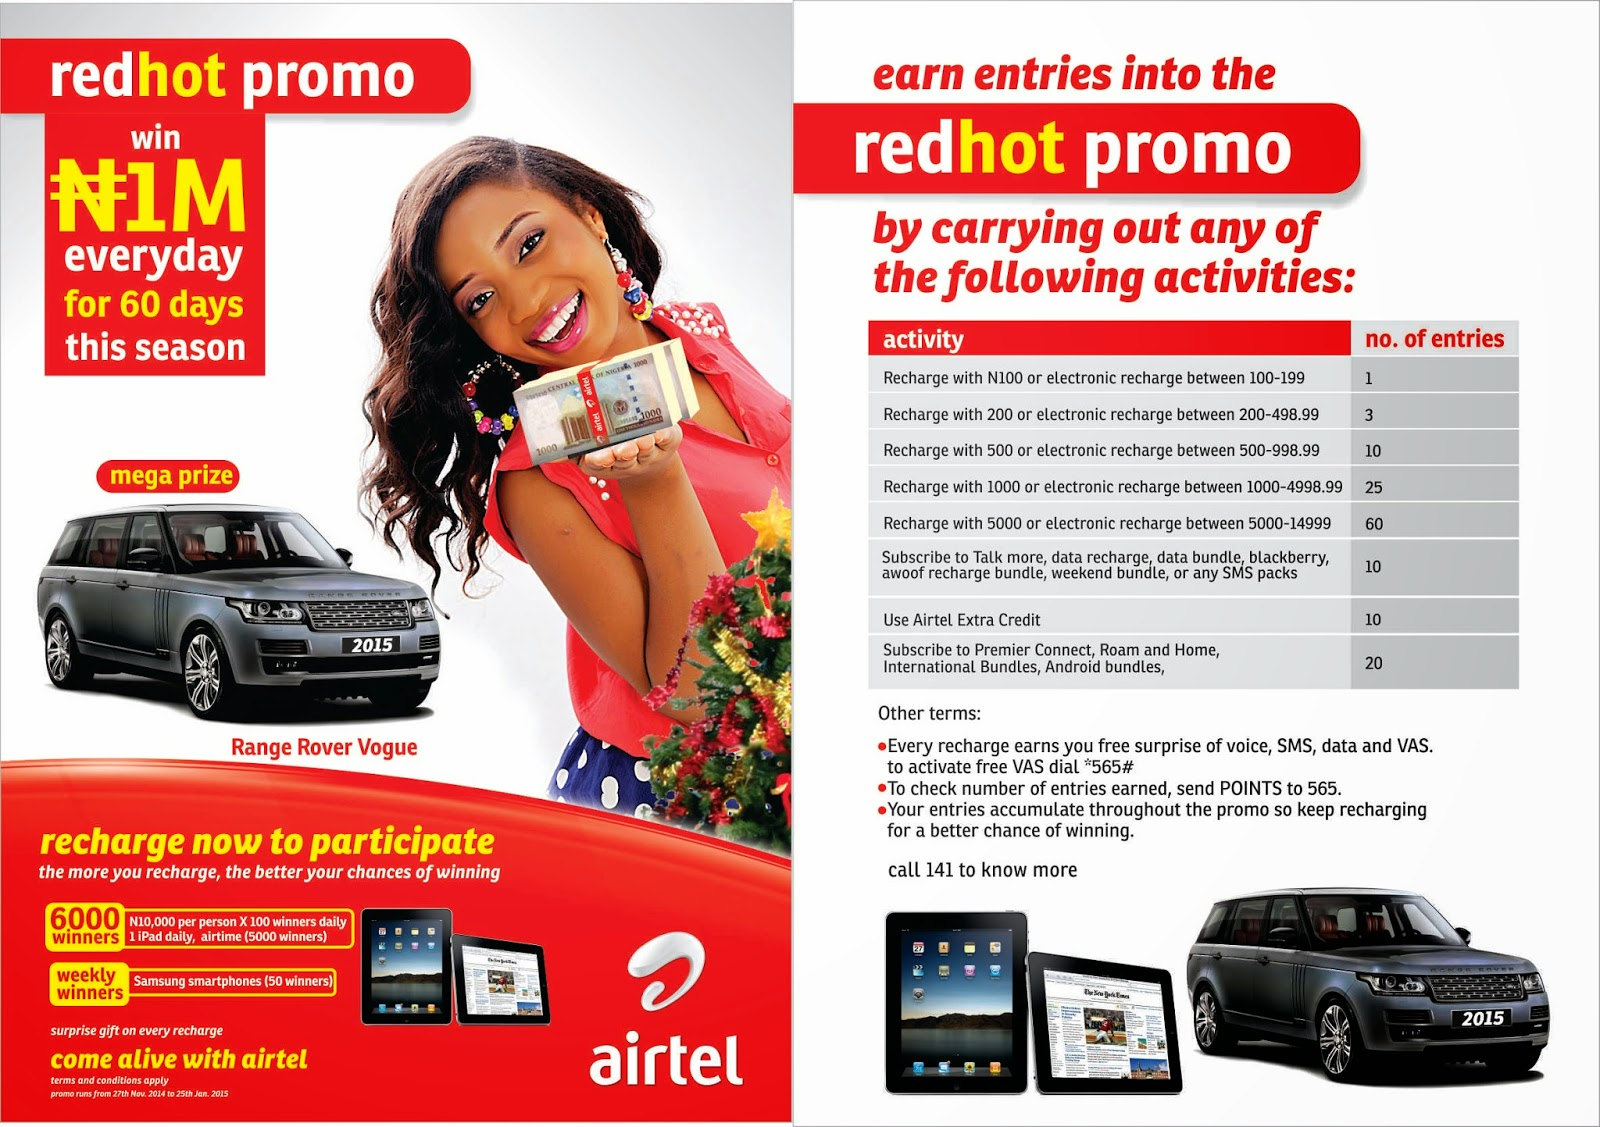 Airtel Red Hot Promo. Win a brand new 2015 Range Rover. N1,000,000 to be won daily for 60 days.